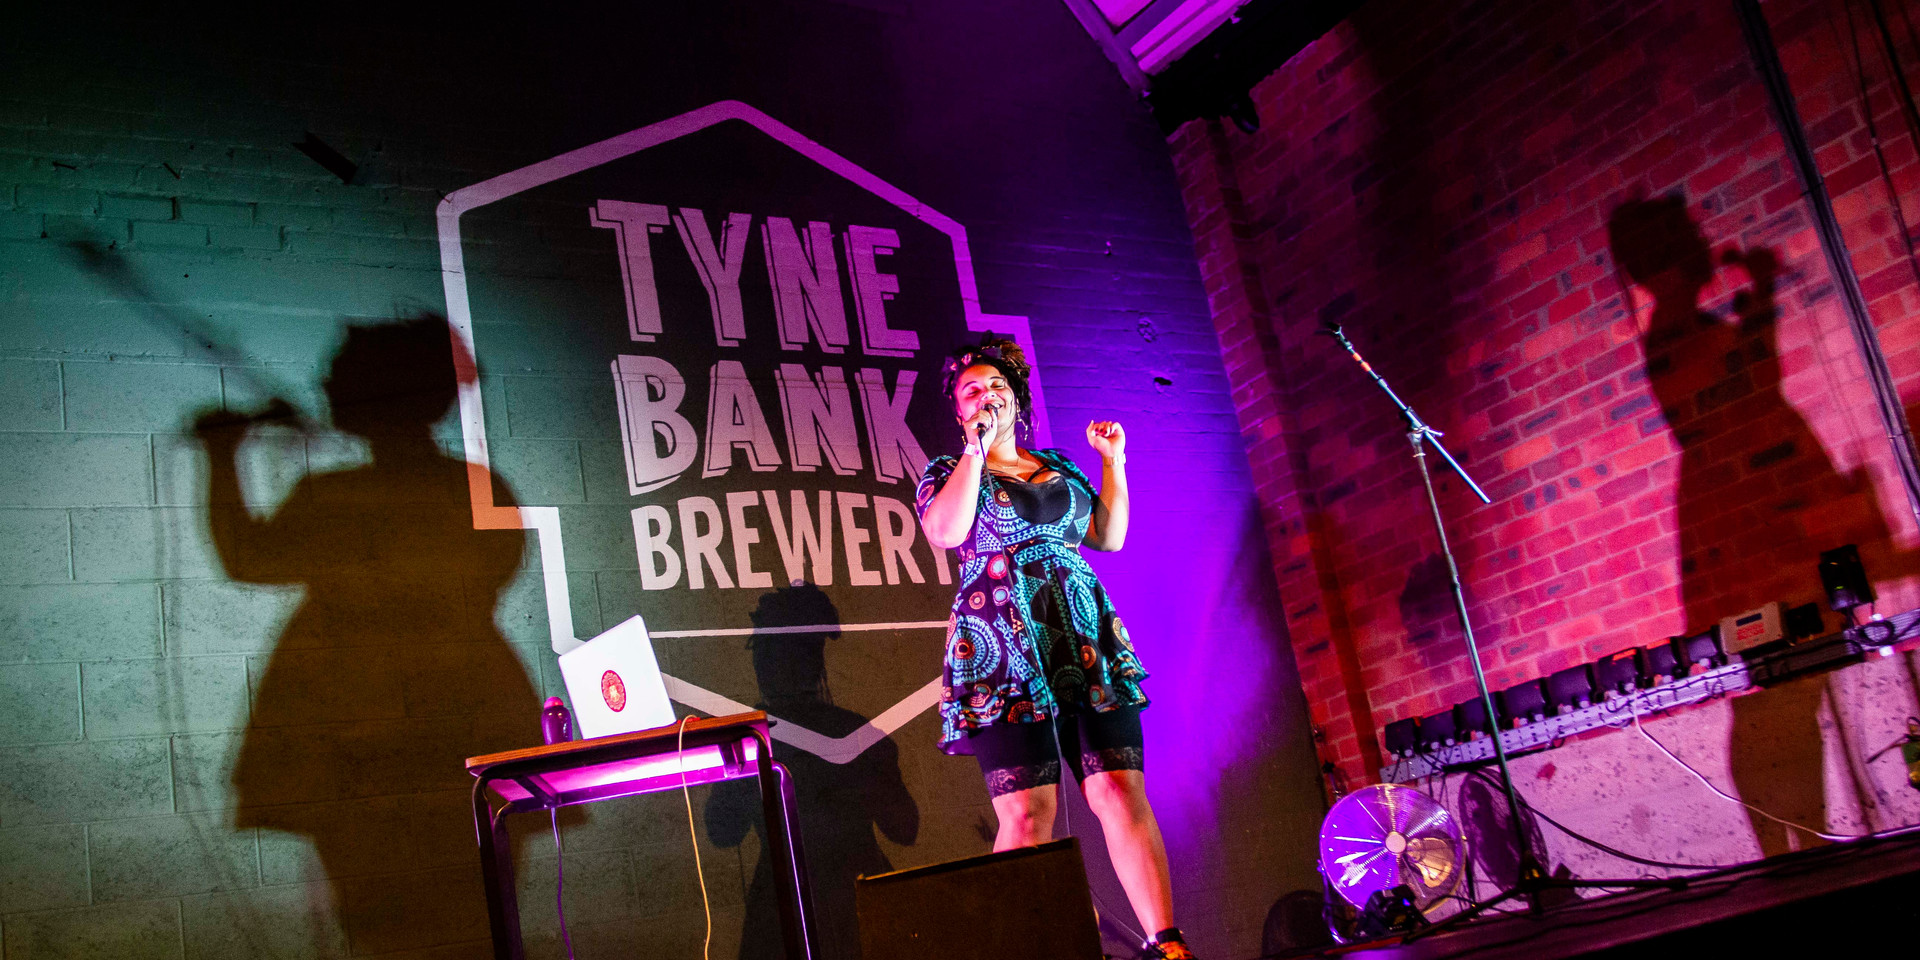 Tyne Bank Brewery 13th Sep Taken by Victoria Wai